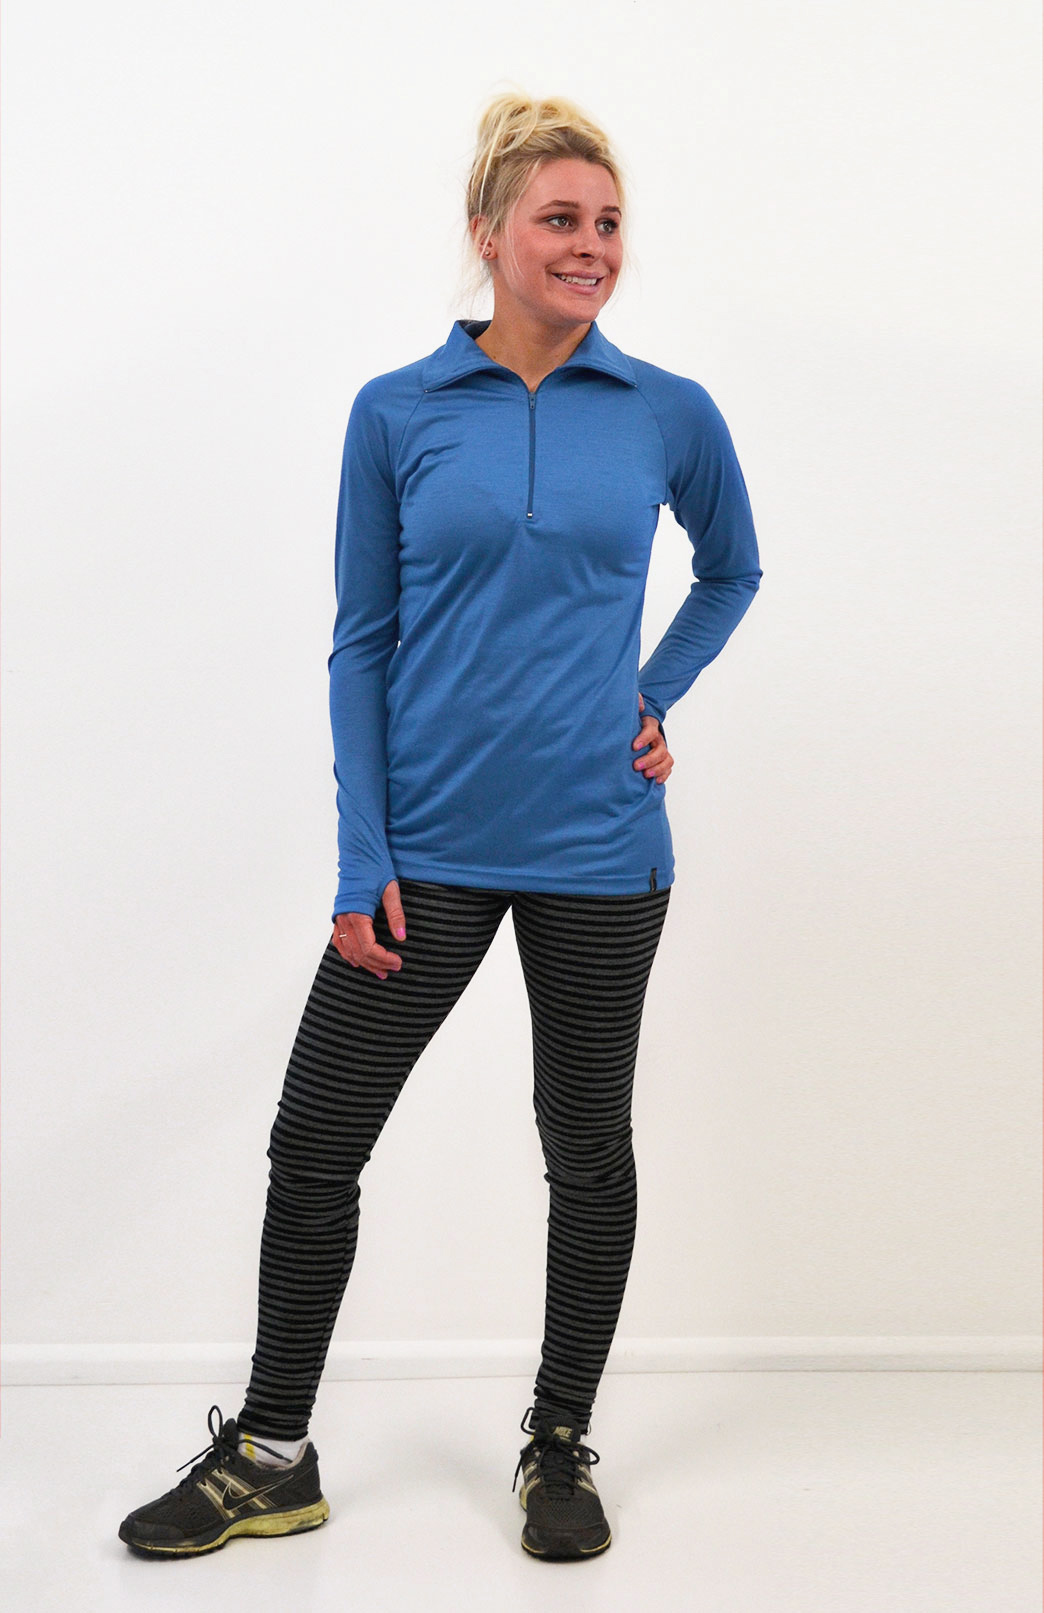 Zip Neck Top - Ultralight (170g) - Women's Bright Blue Ultralight Wool Zip Neck Pullover Style Top with Thumb Holes - Smitten Merino Tasmania Australia